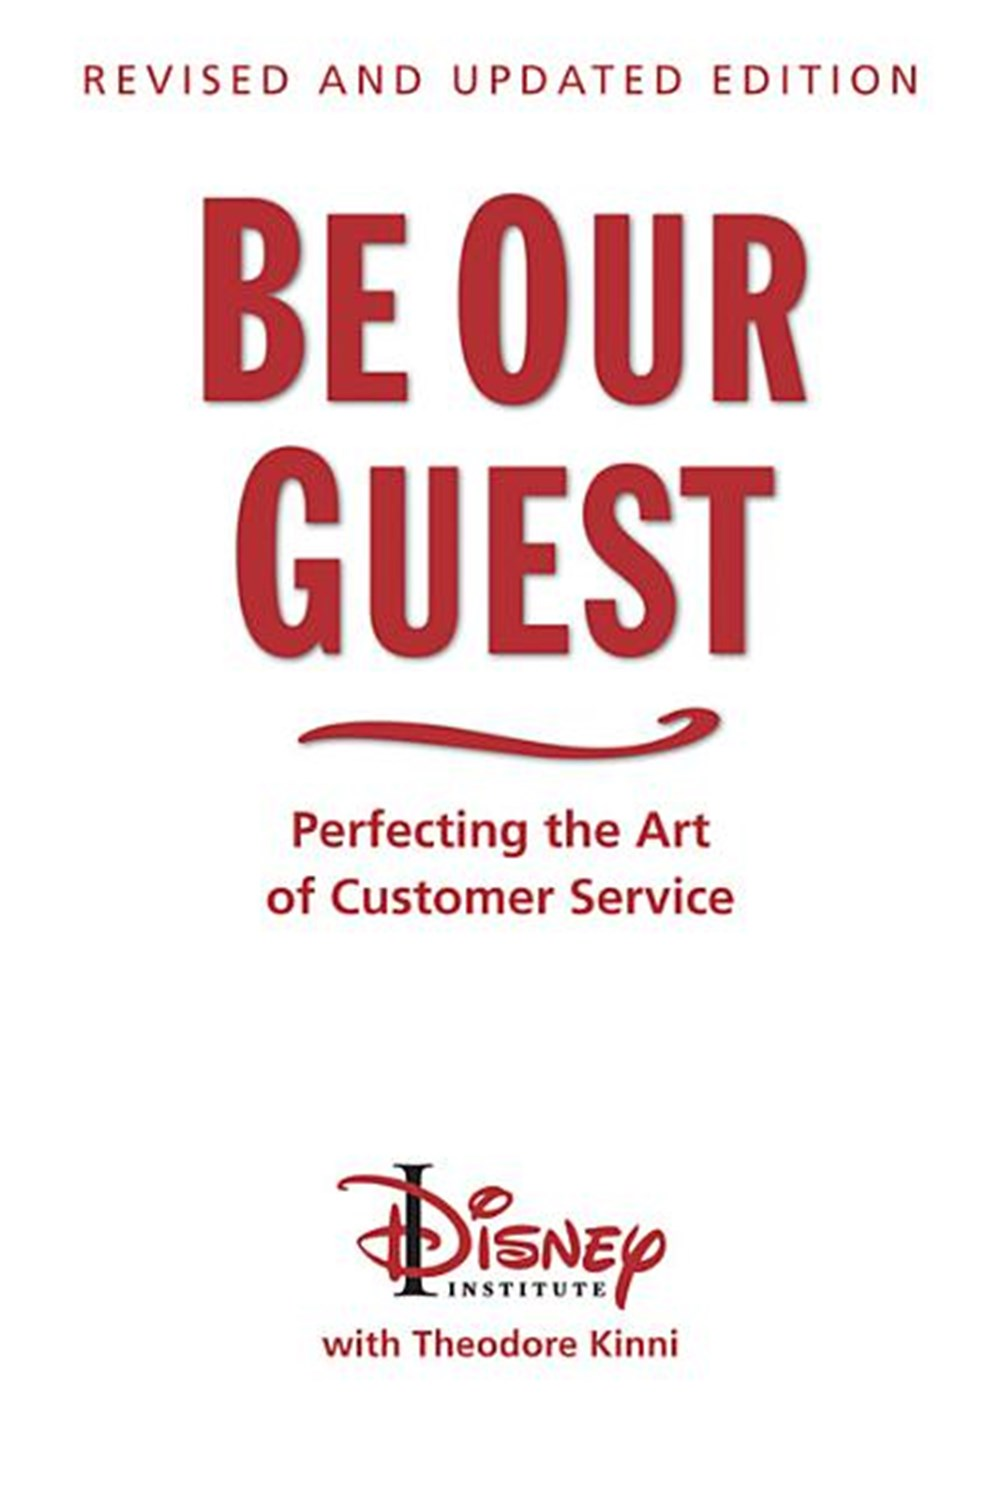 Be Our Guest (Revised and Updated Edition) Perfecting the Art of Customer Service